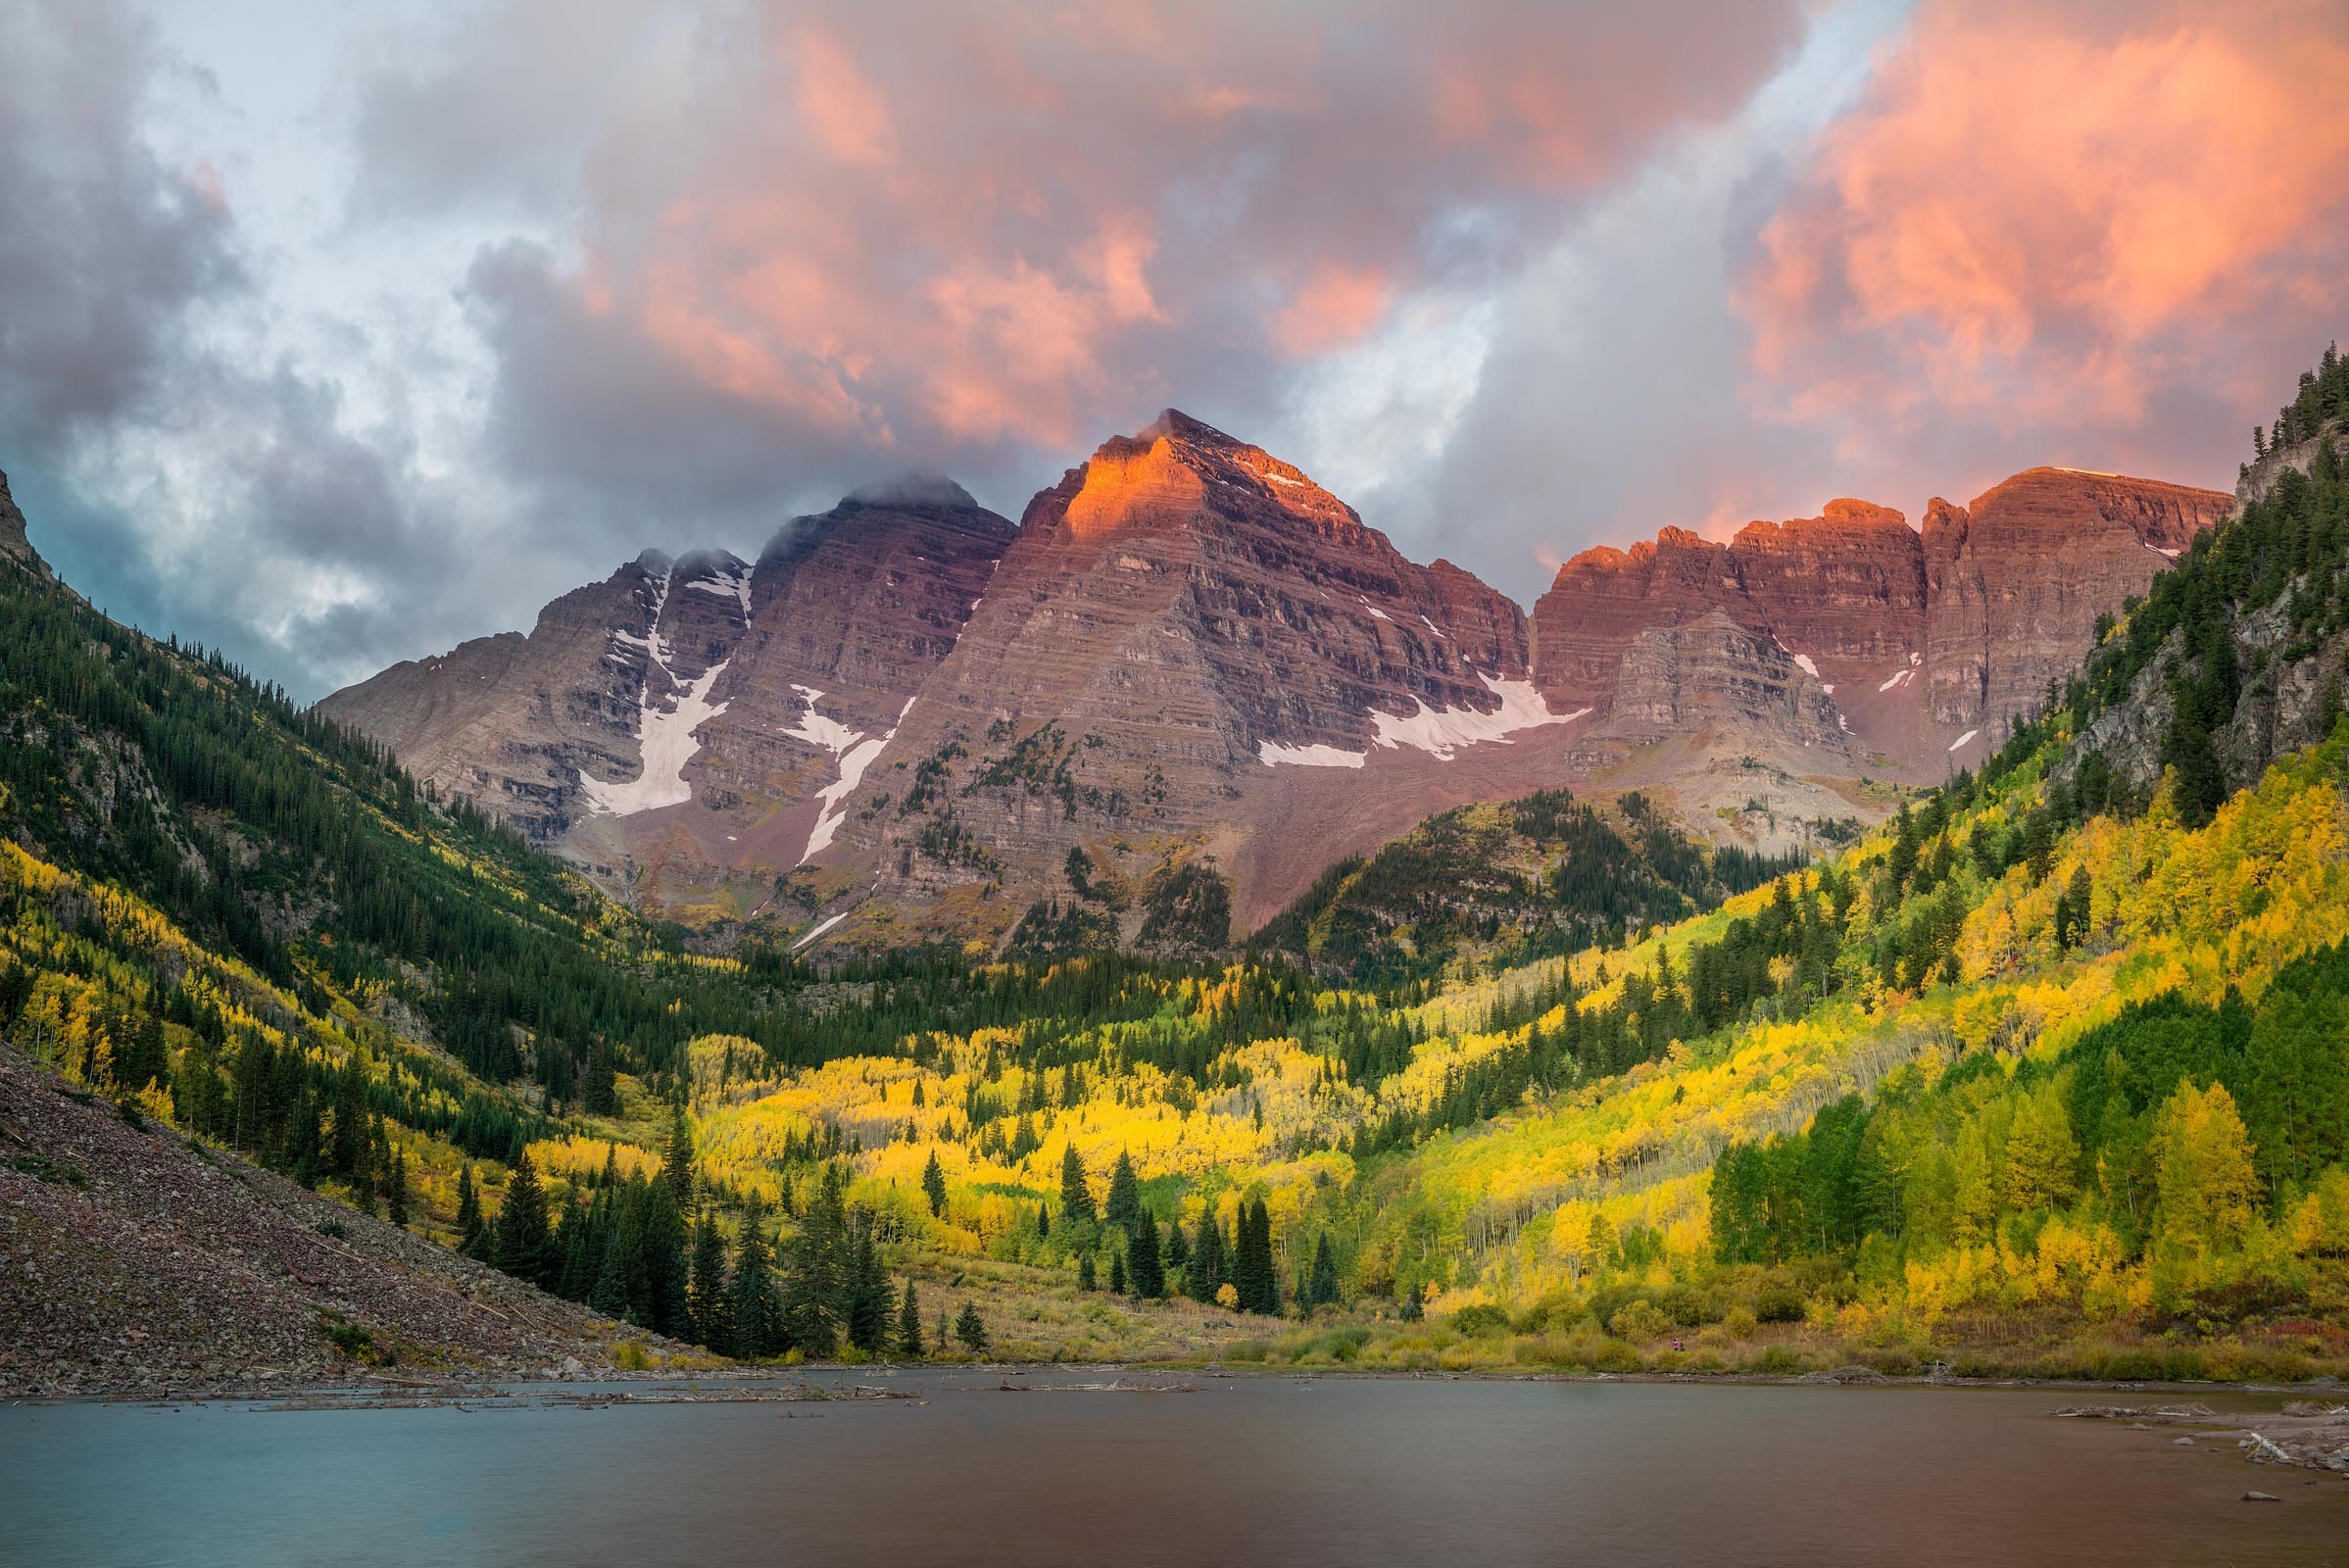 Photograph of Maroon Bells in Aspen, Colorado by Brent Goldman Photography